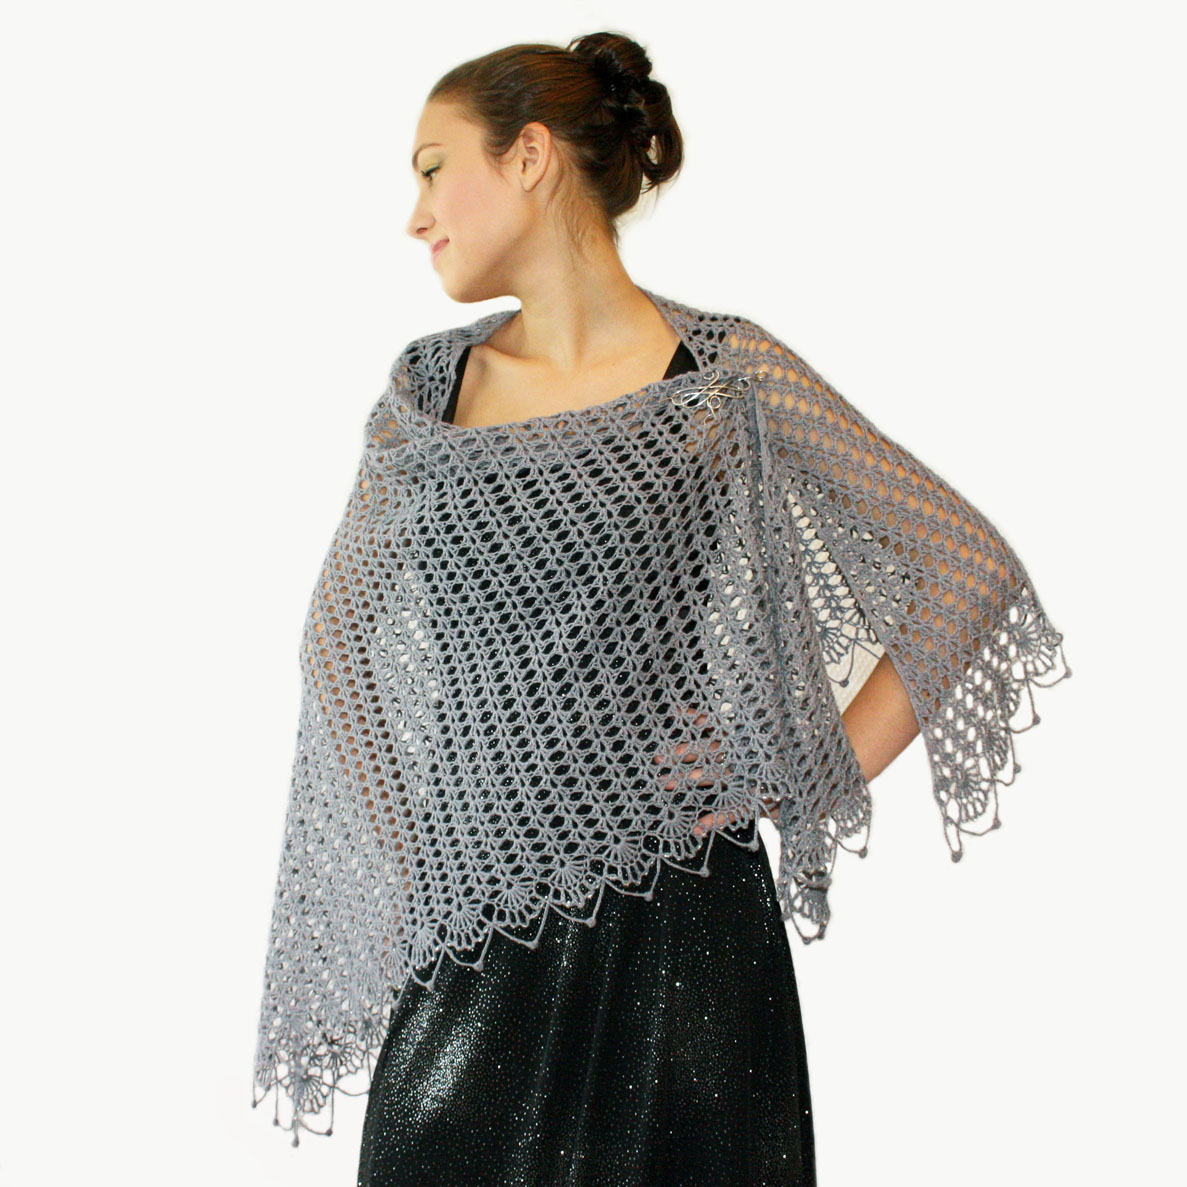 Latest Crochet Patterns : ... sew?cute design shop: new crochet pattern - wrapped in lace shawl